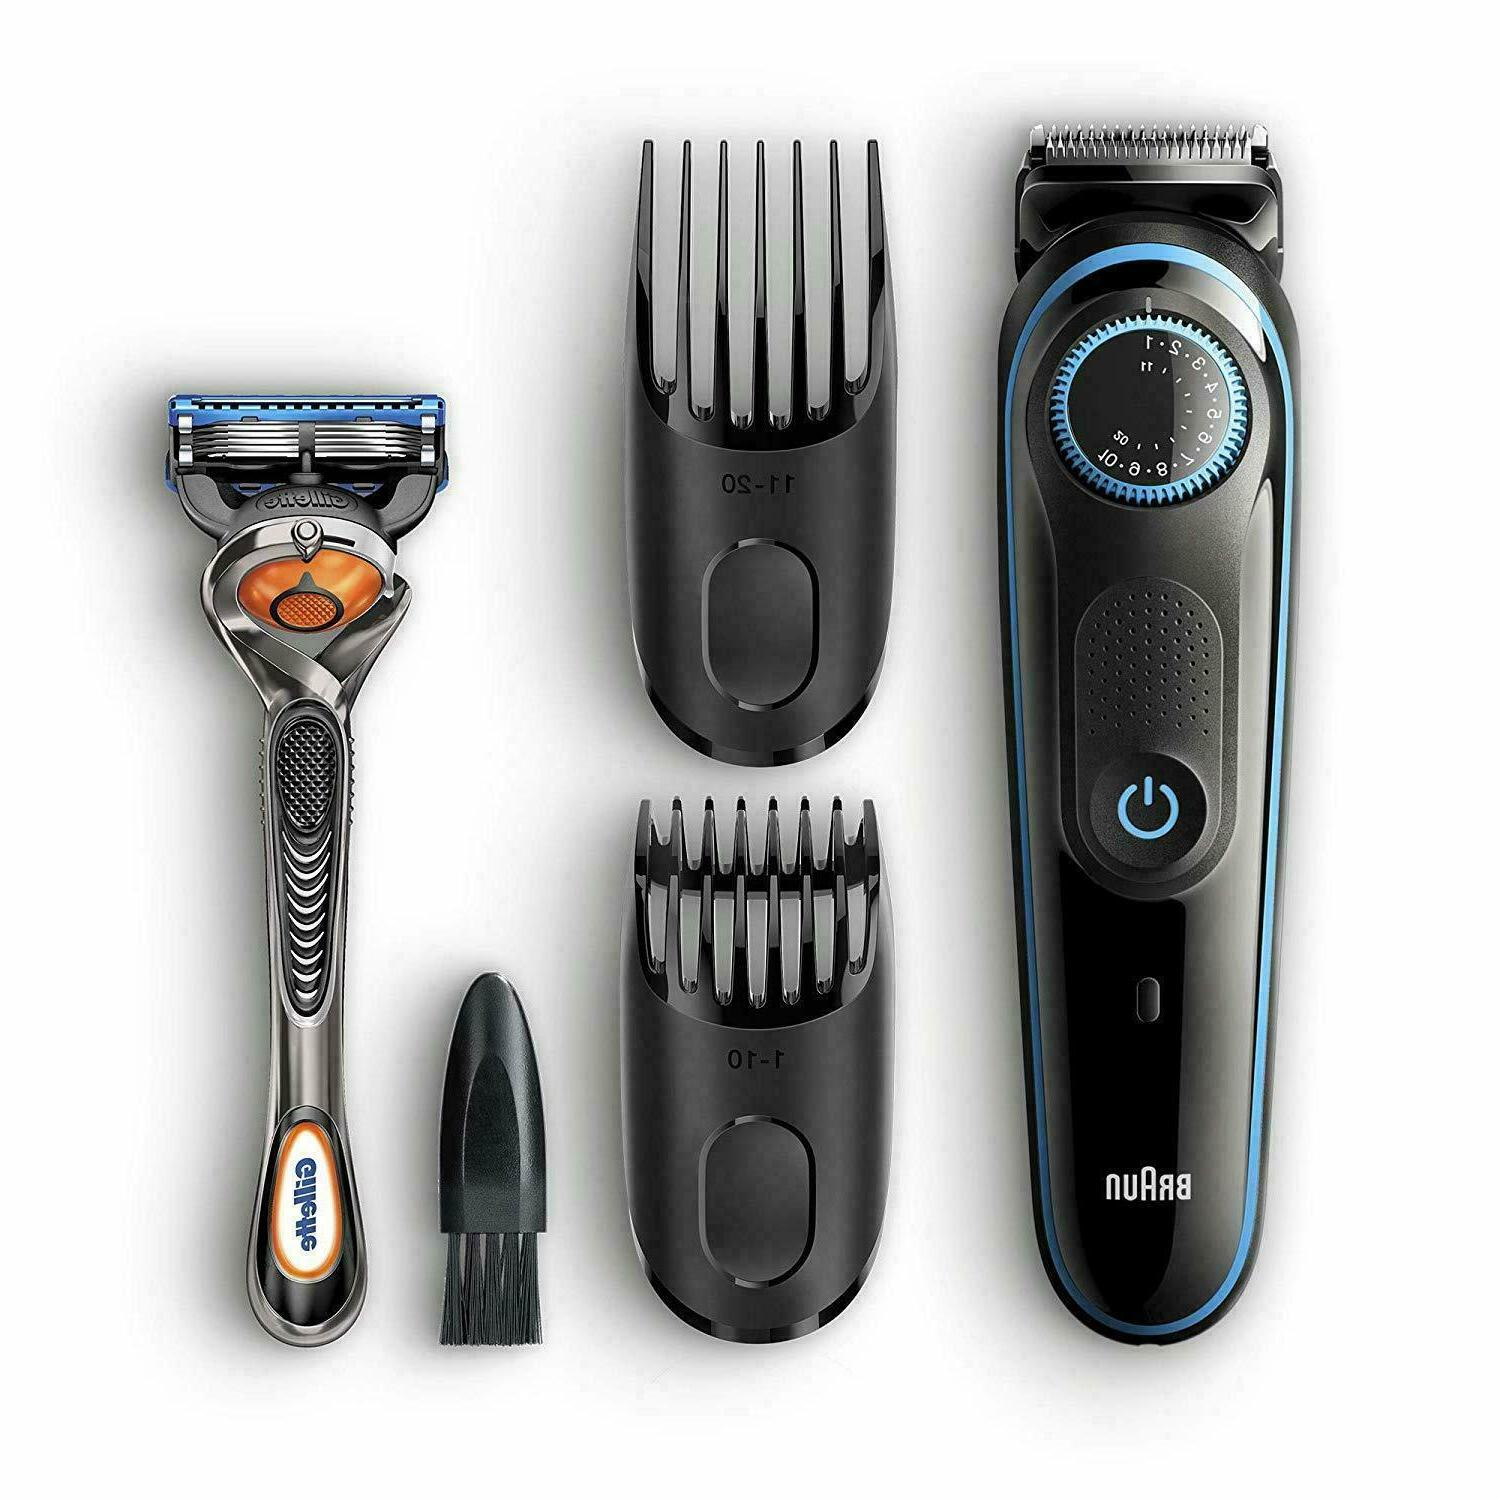 Braun Electric Razor w/ Manual Razor Model